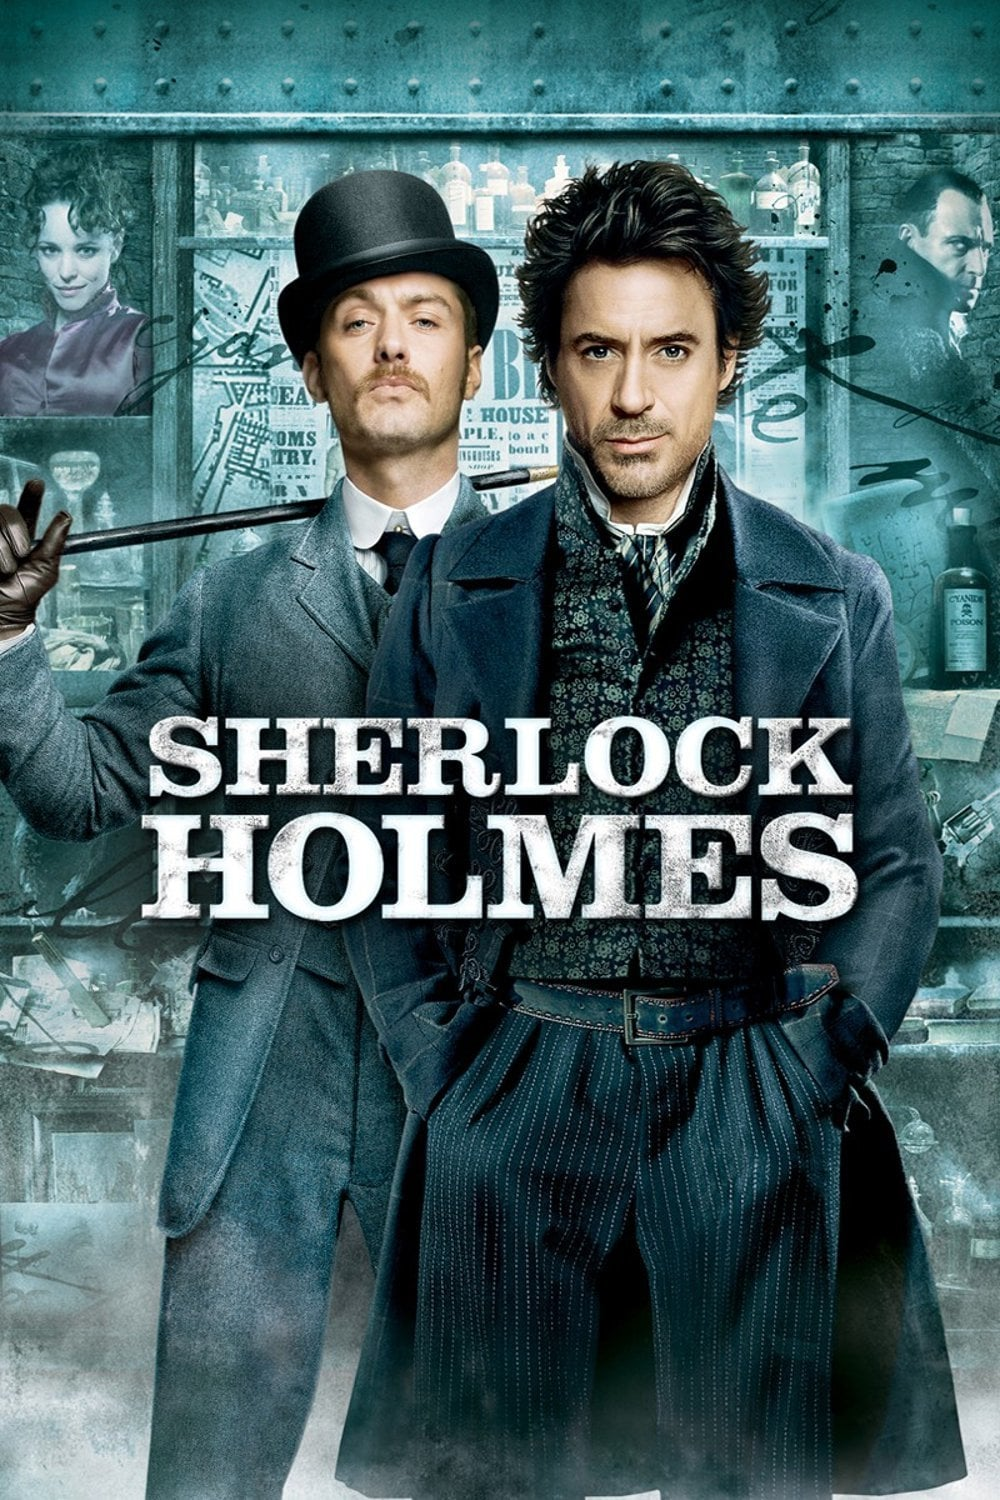 Poster and image movie Film Sherlock Holmes - Sherlock Holmes - Sherlock Holmes -  2009